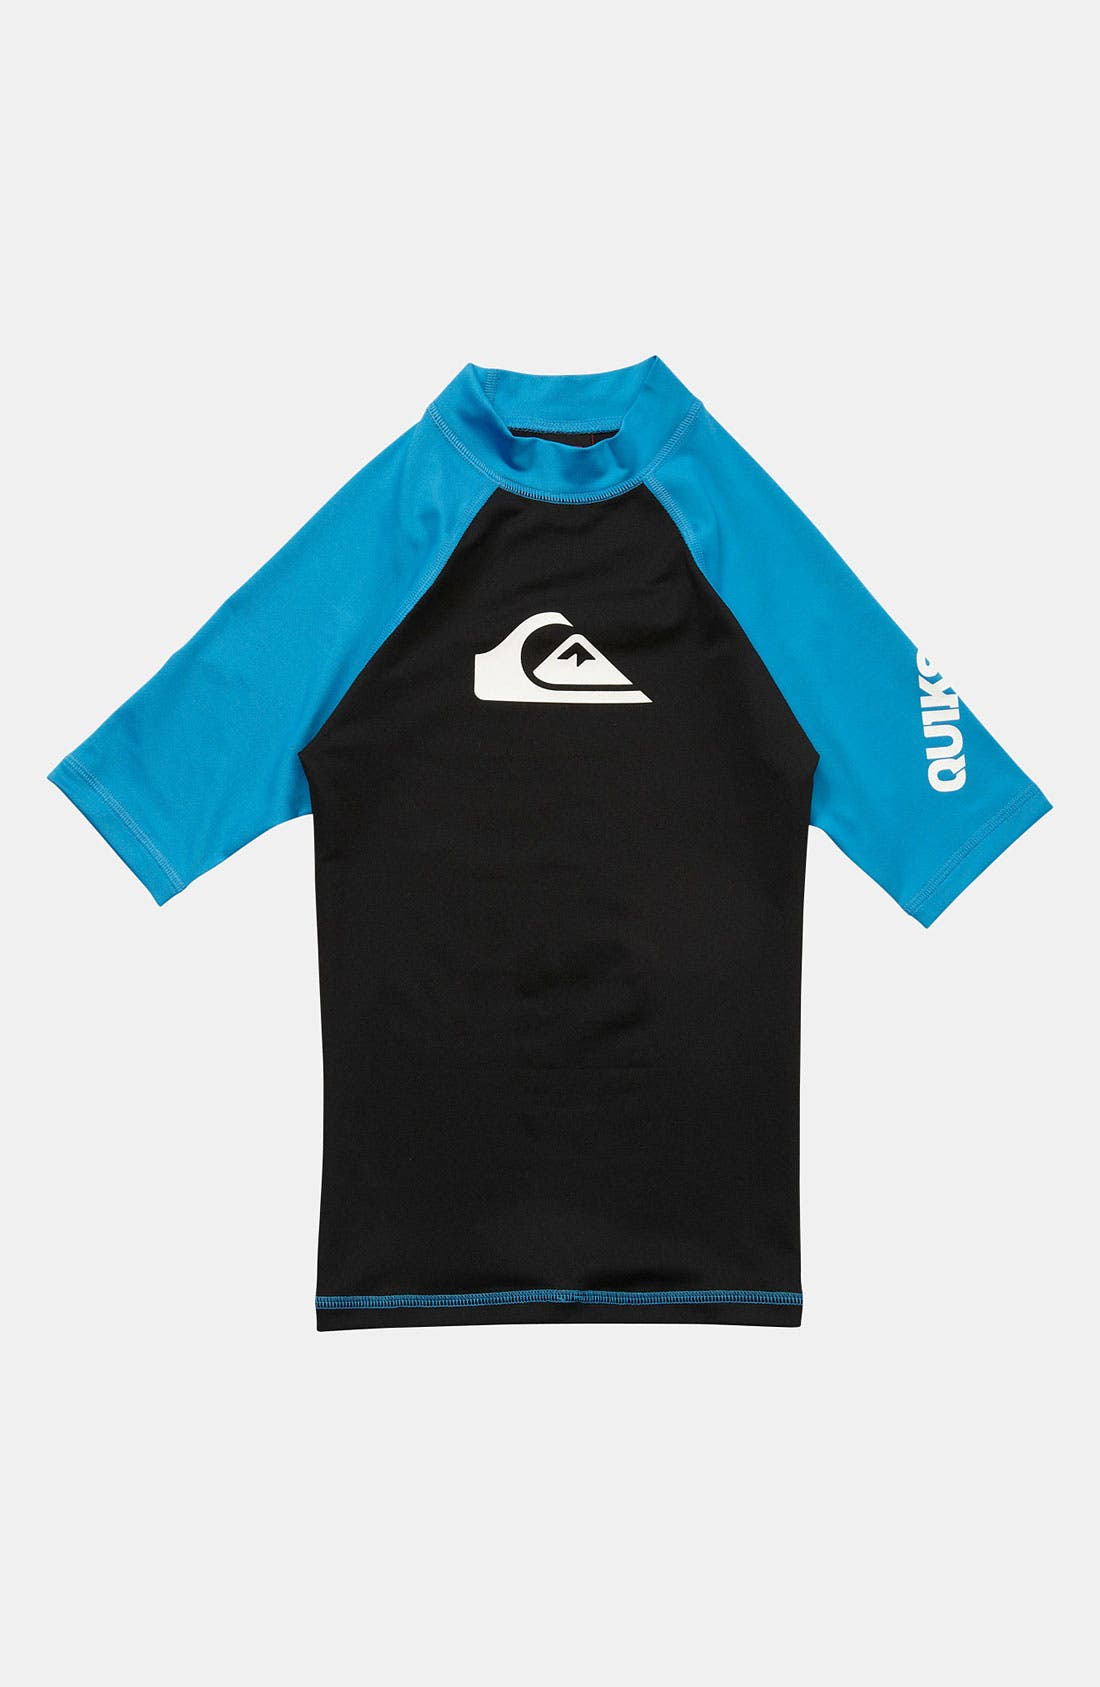 Alternate Image 1 Selected - Quiksilver 'All Time' Sun Protection Rashguard (Big Boys)